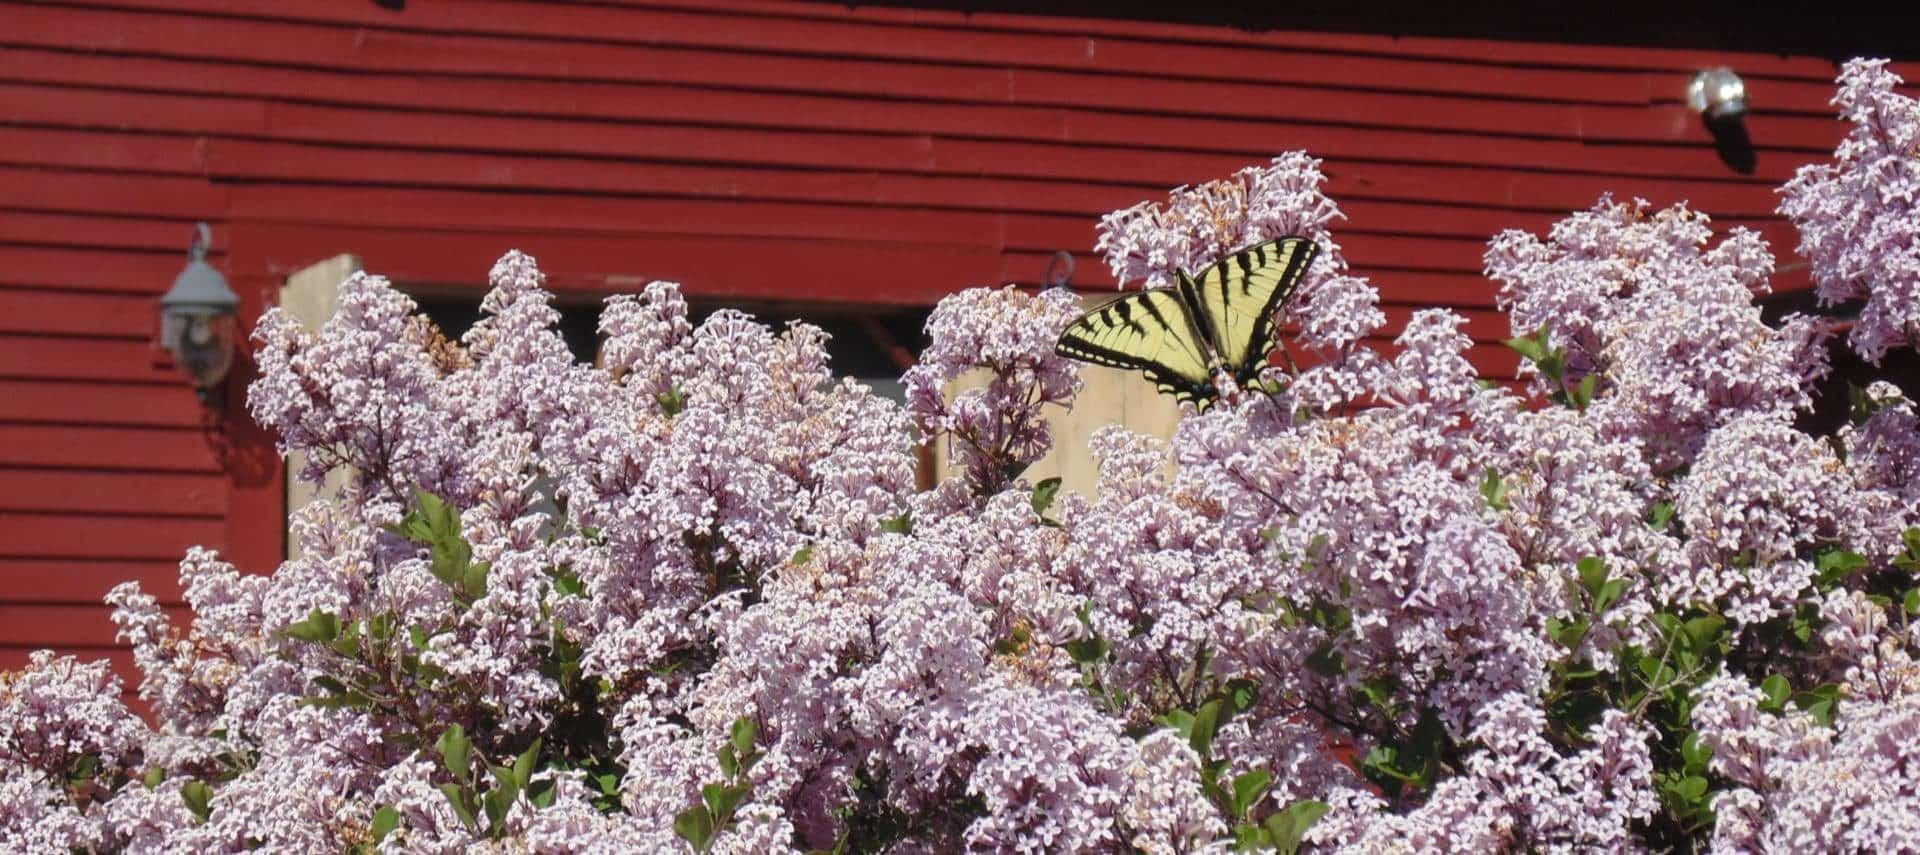 Close up view of black and yellow butterfly perched on top of lilac bush with light purple flowers